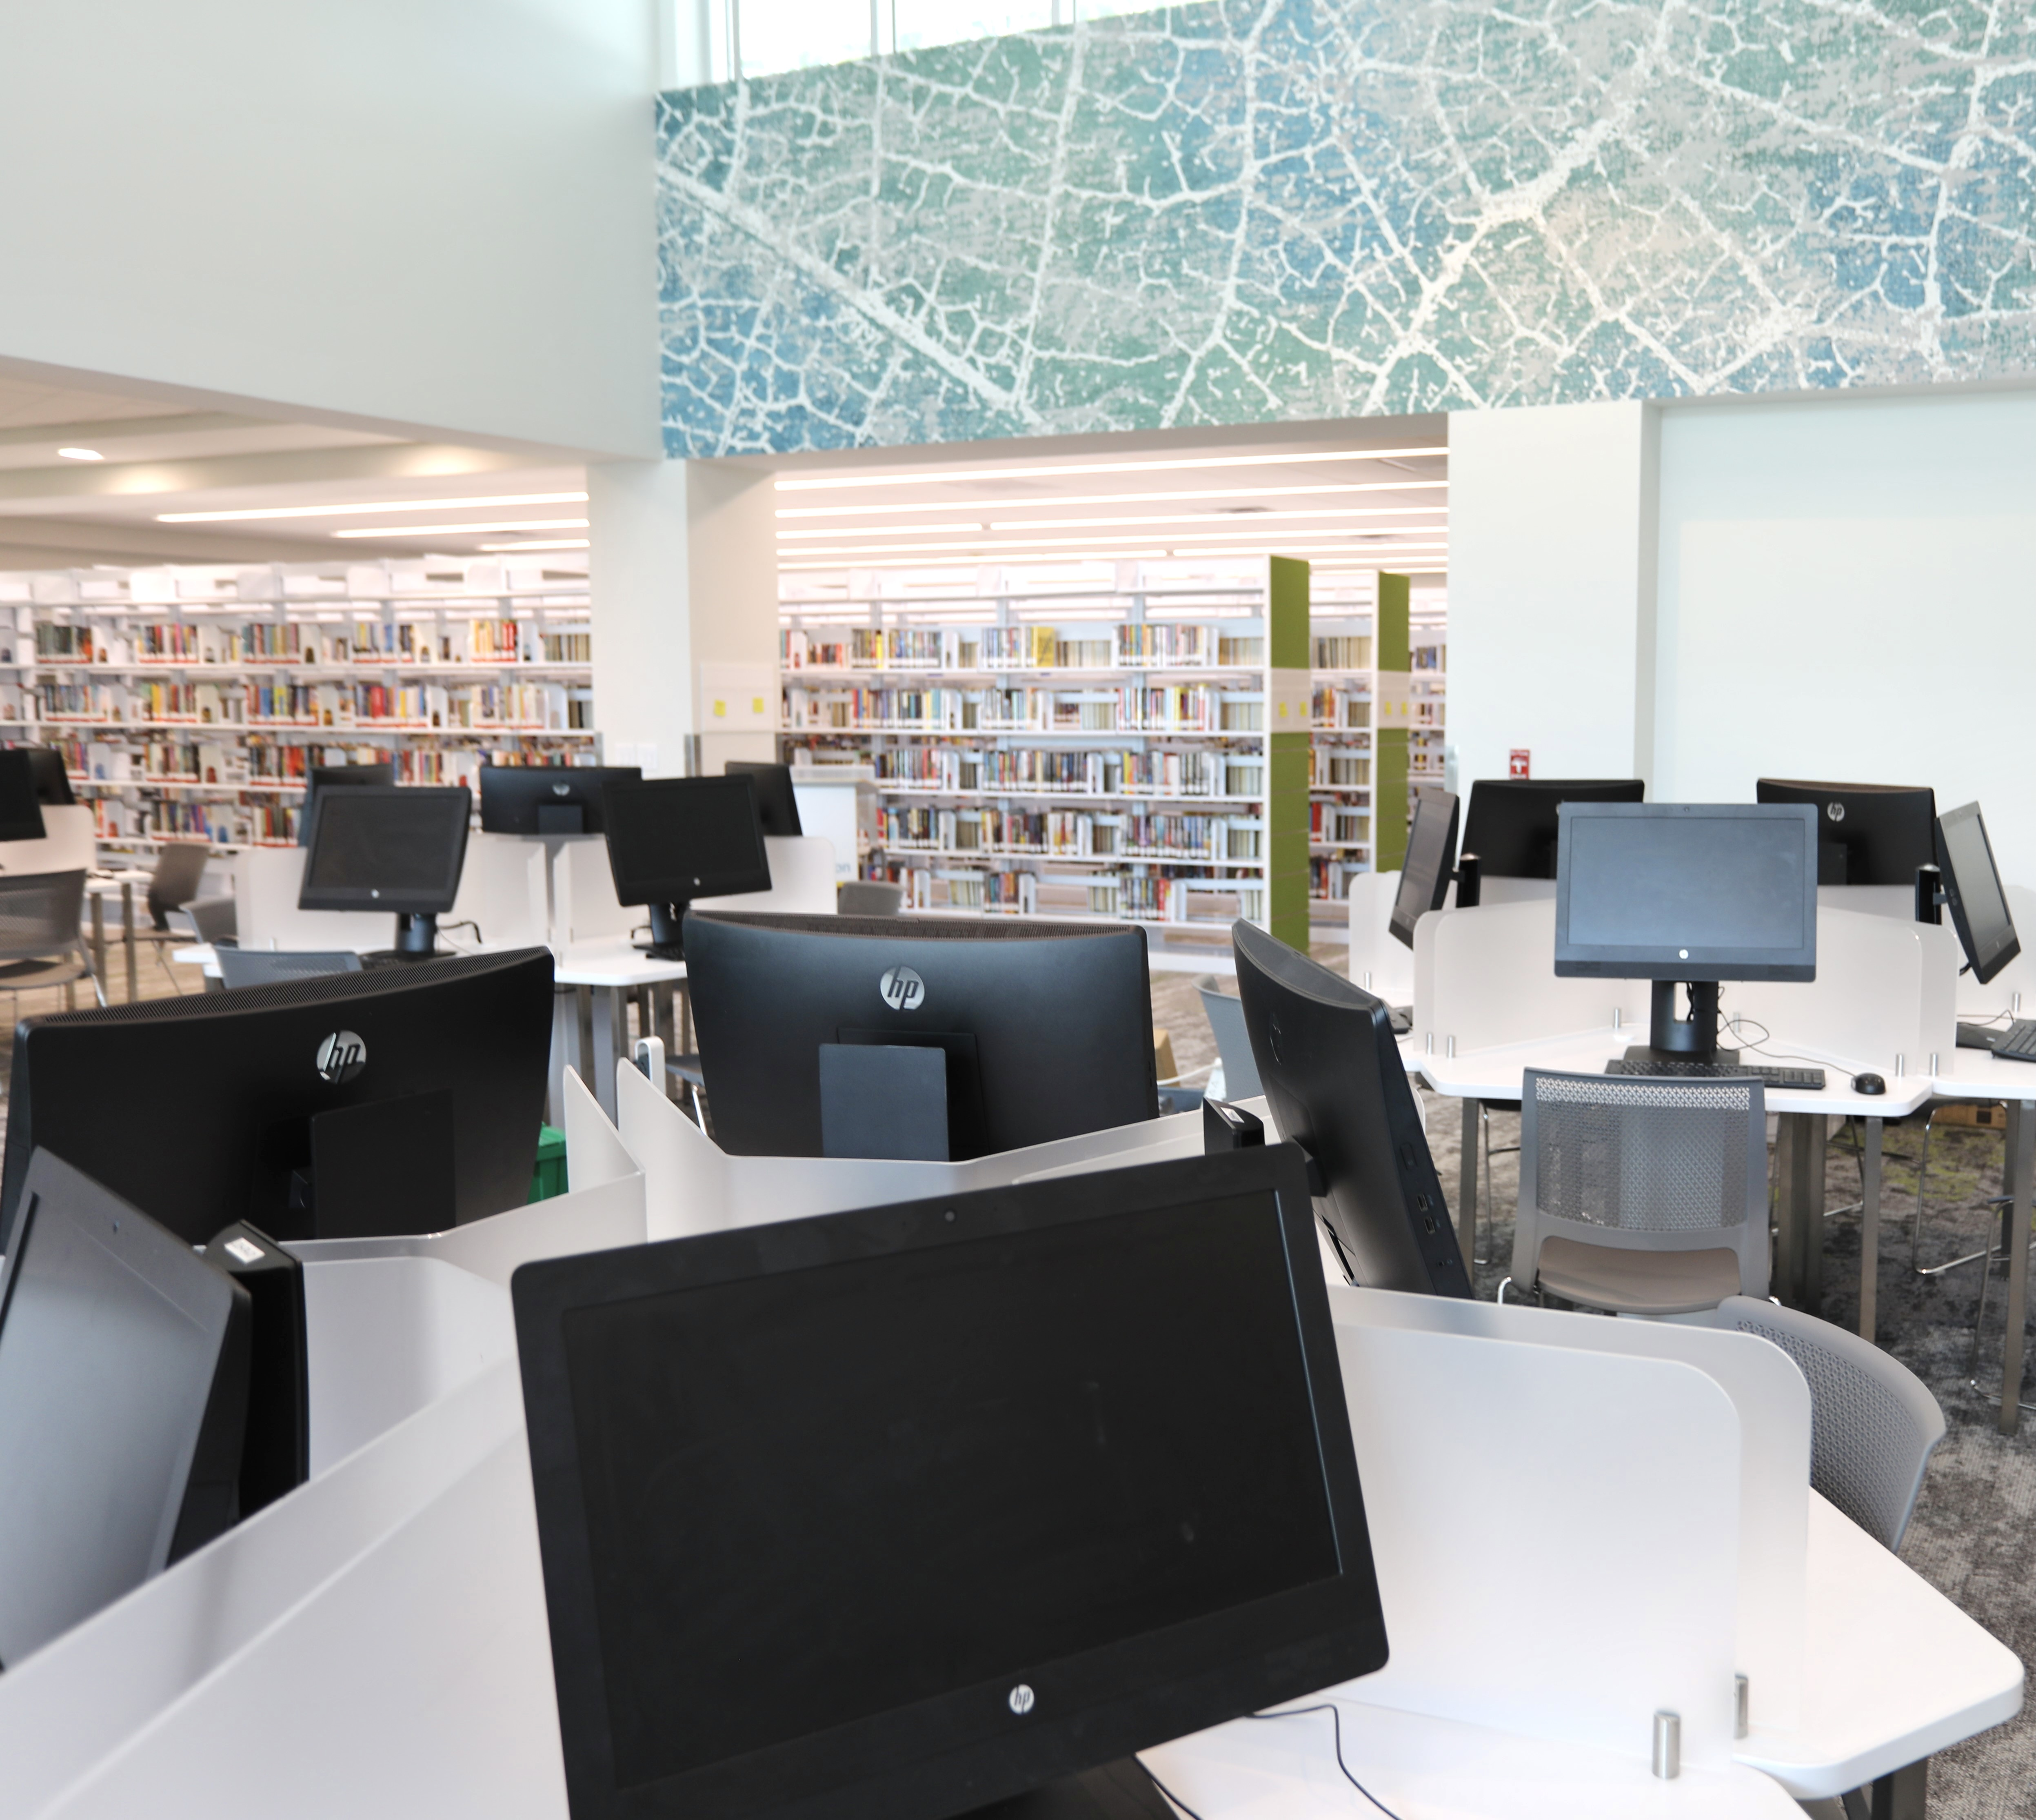 CCPL to open renovated John's Island Library on Aug. 23